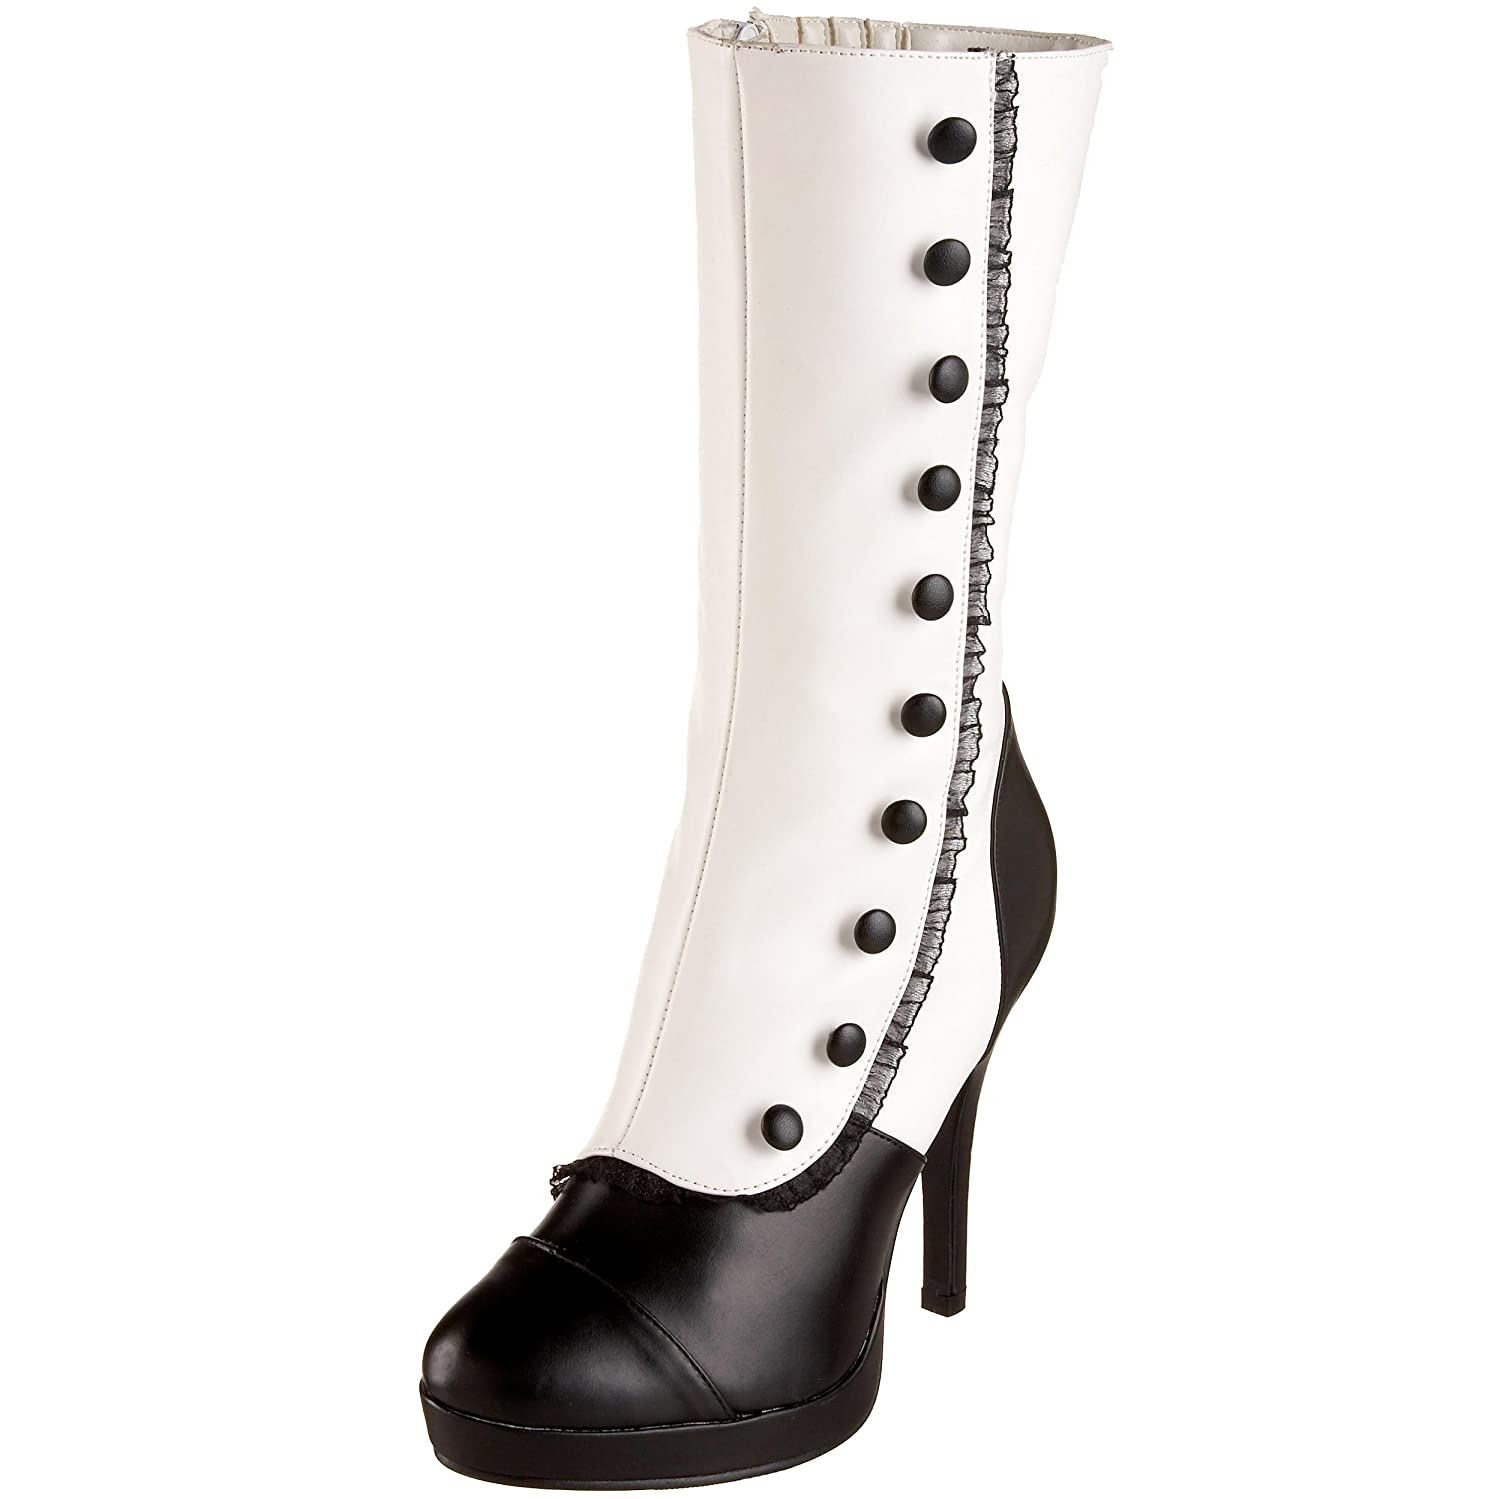 Vintage Boots- Buy Winter Retro Boots Womens Splendor-130 Mid-Calf Boot $126.63 AT vintagedancer.com